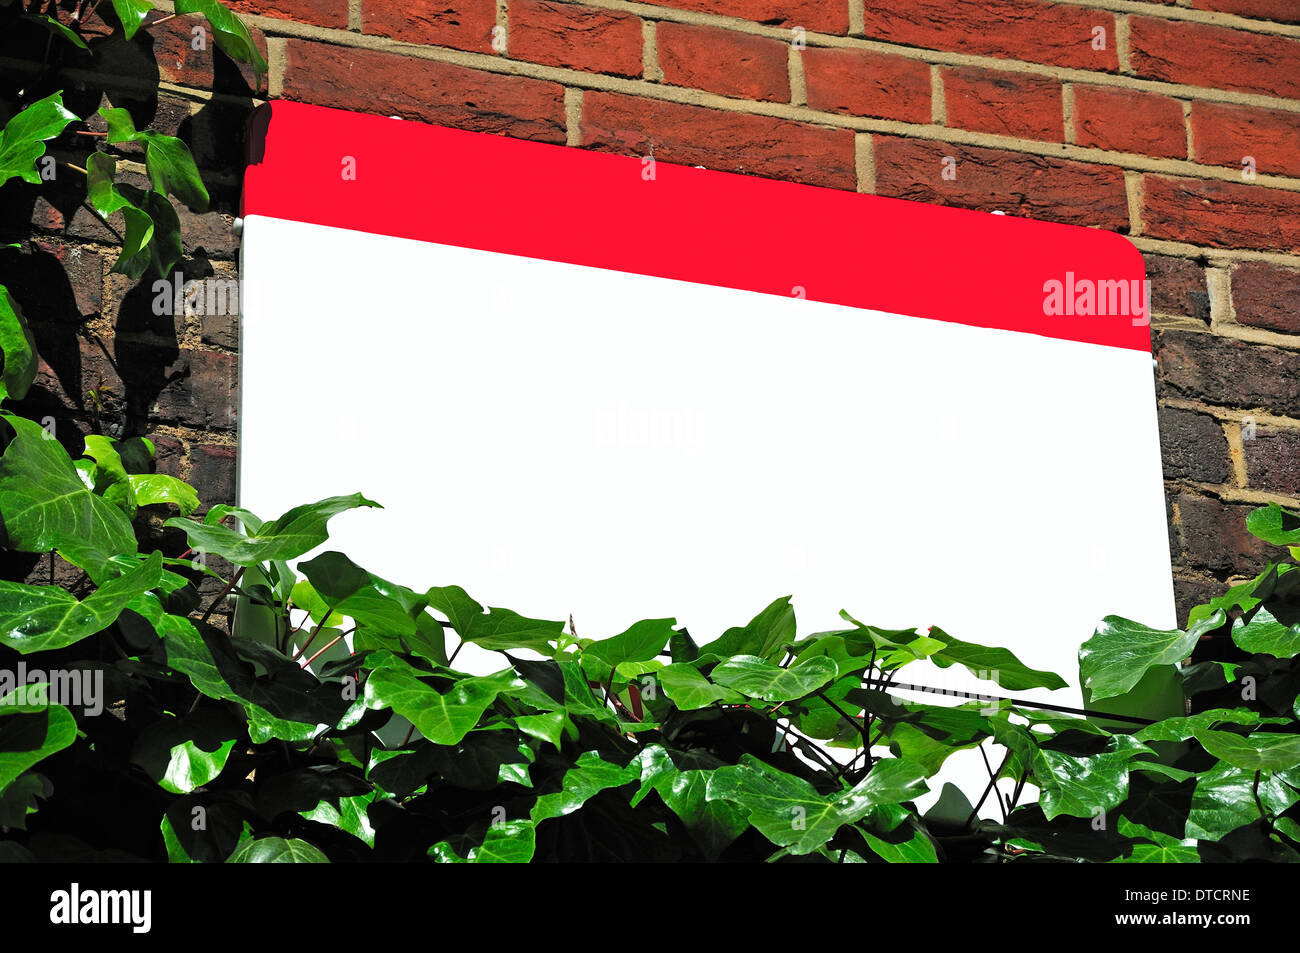 Blank street sign (Drury Lane, London) [Text deleted] - Stock Image